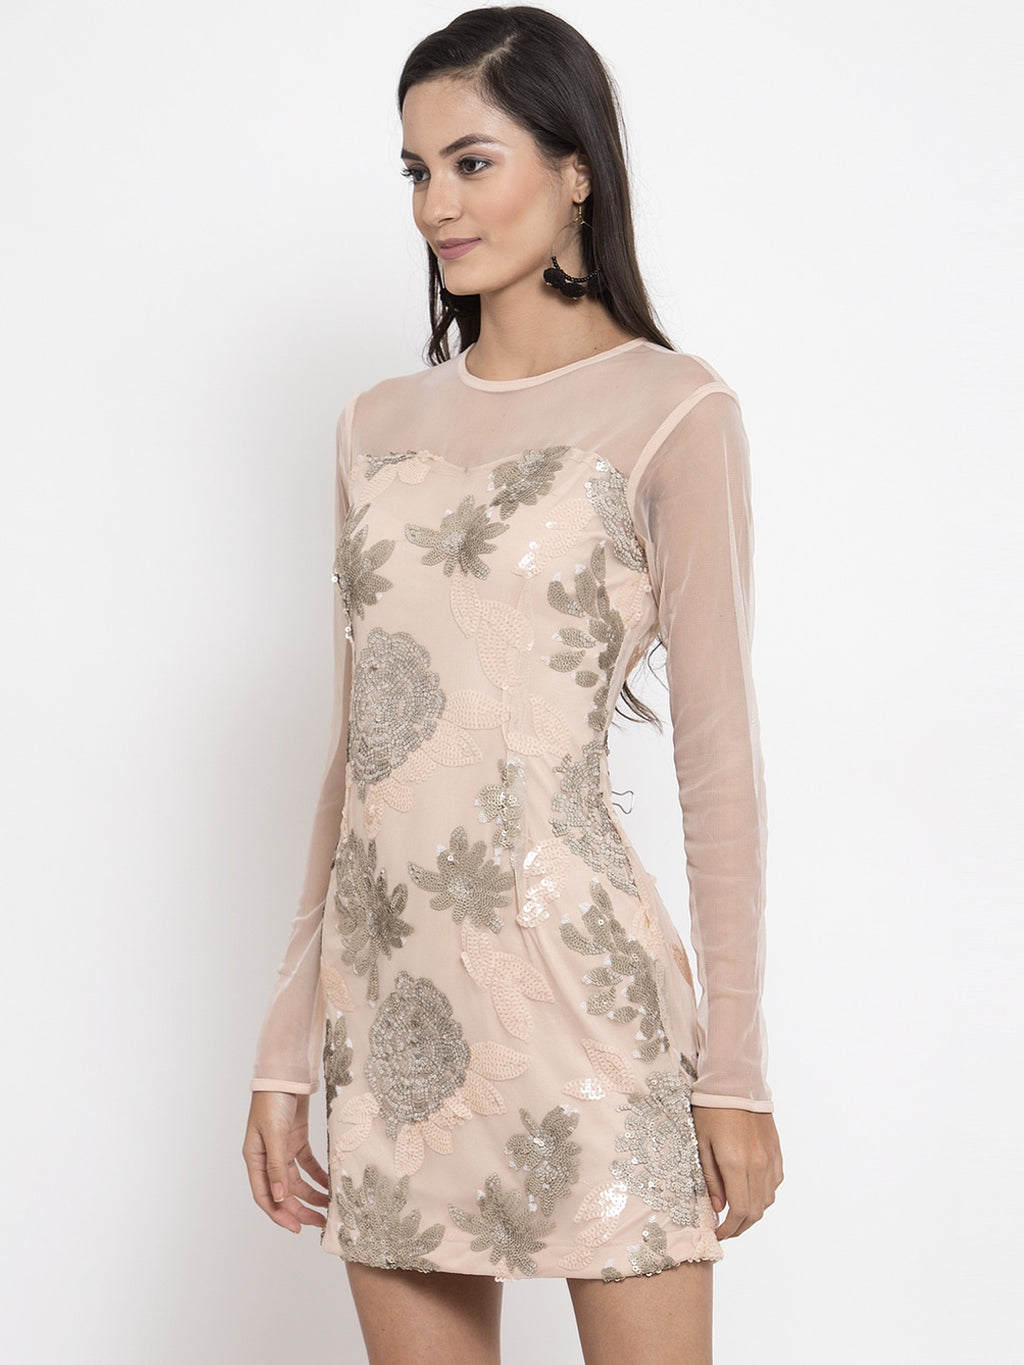 NUDE EMBELISHED SHEATH DRESS - chique boutique